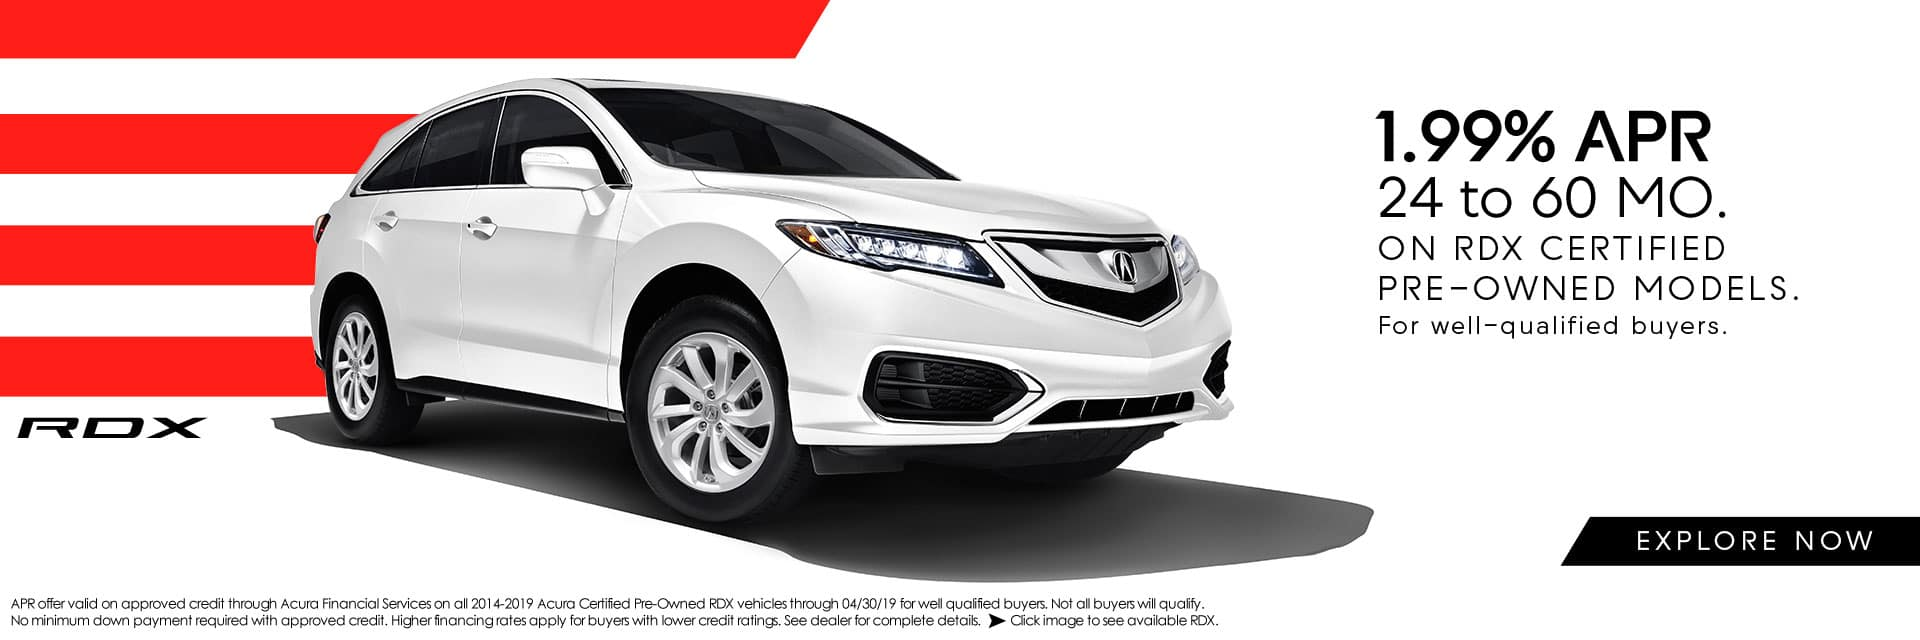 Acura Certified Pre-Owned RDX APR Offer Sunnyside Acura Nashua NH